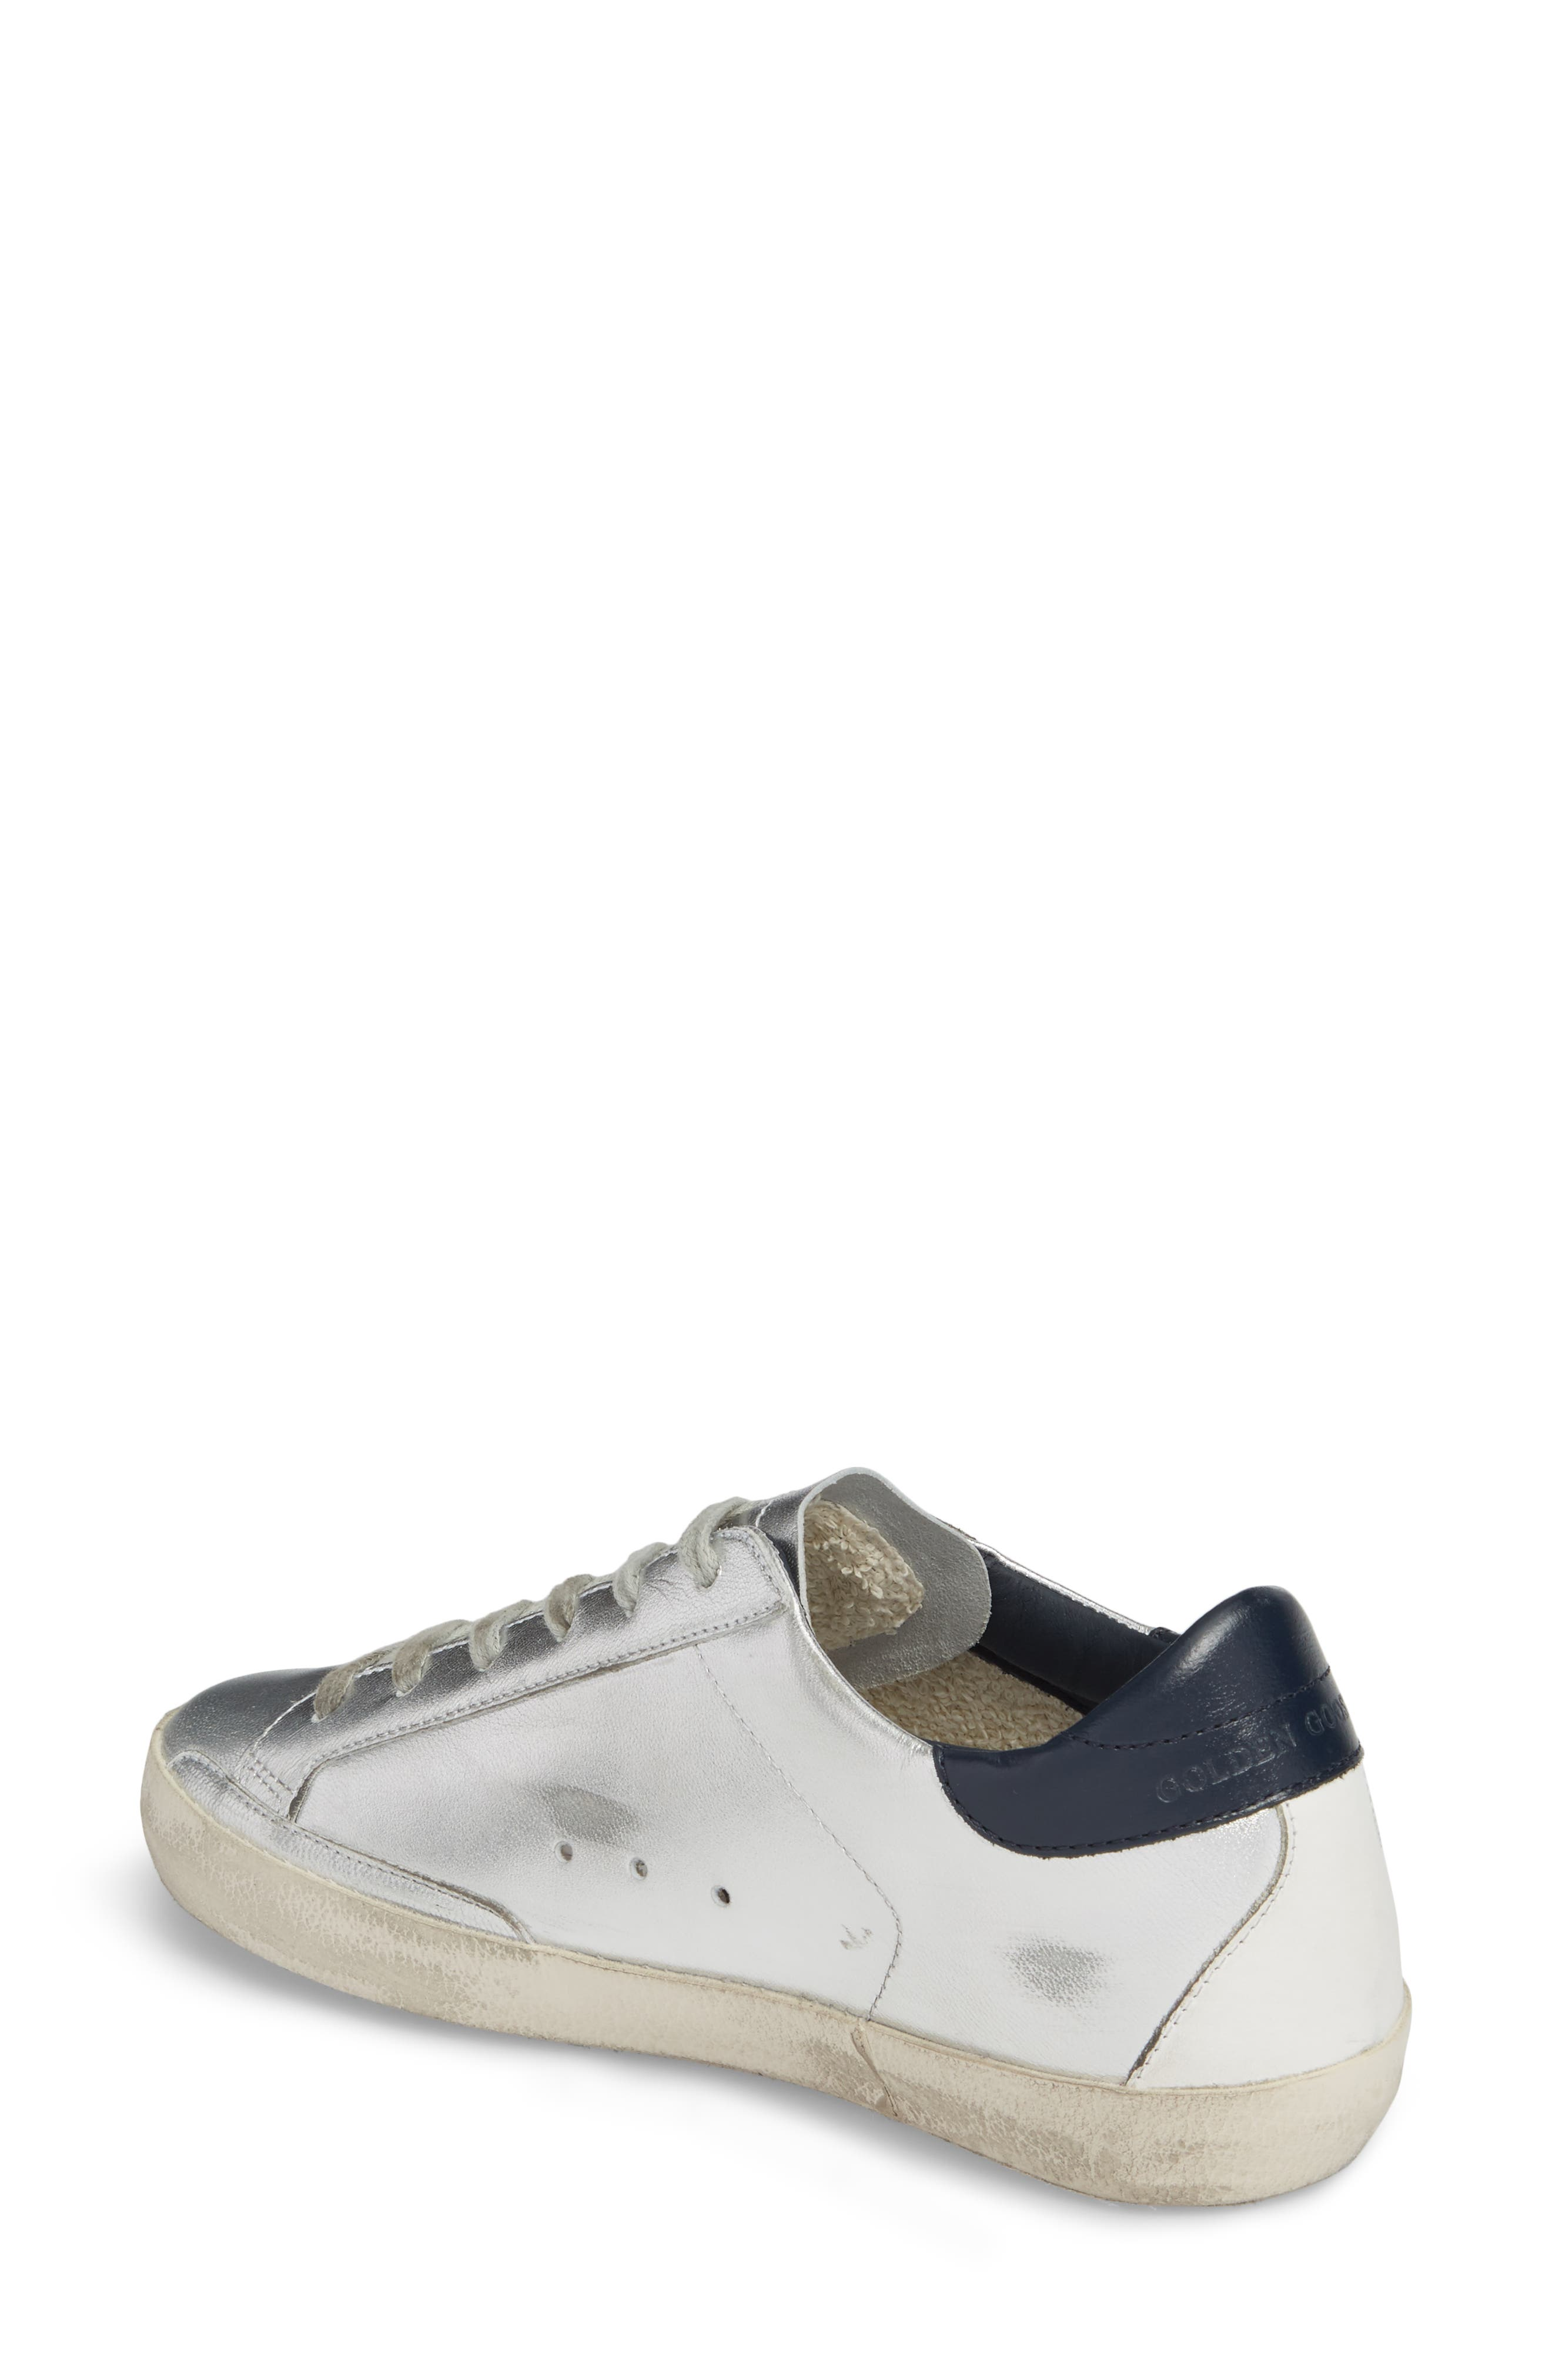 Superstar Metallic Low Top Sneaker,                             Alternate thumbnail 2, color,                             040